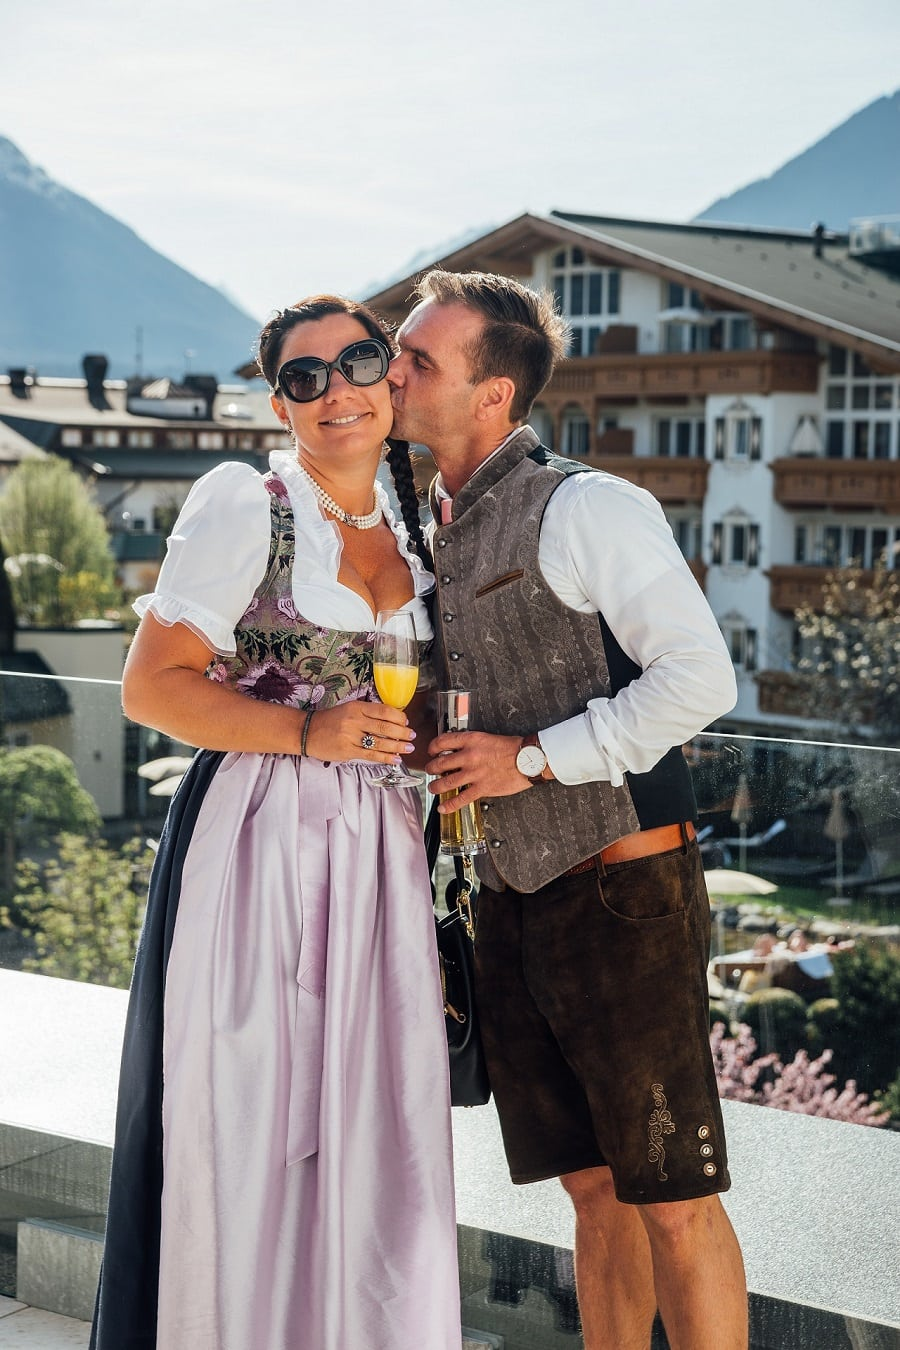 Stressfree Weddings by SandraM Wedding Planner Austria - member of the Destination Wedding Directory by Weddings Abroad Guide